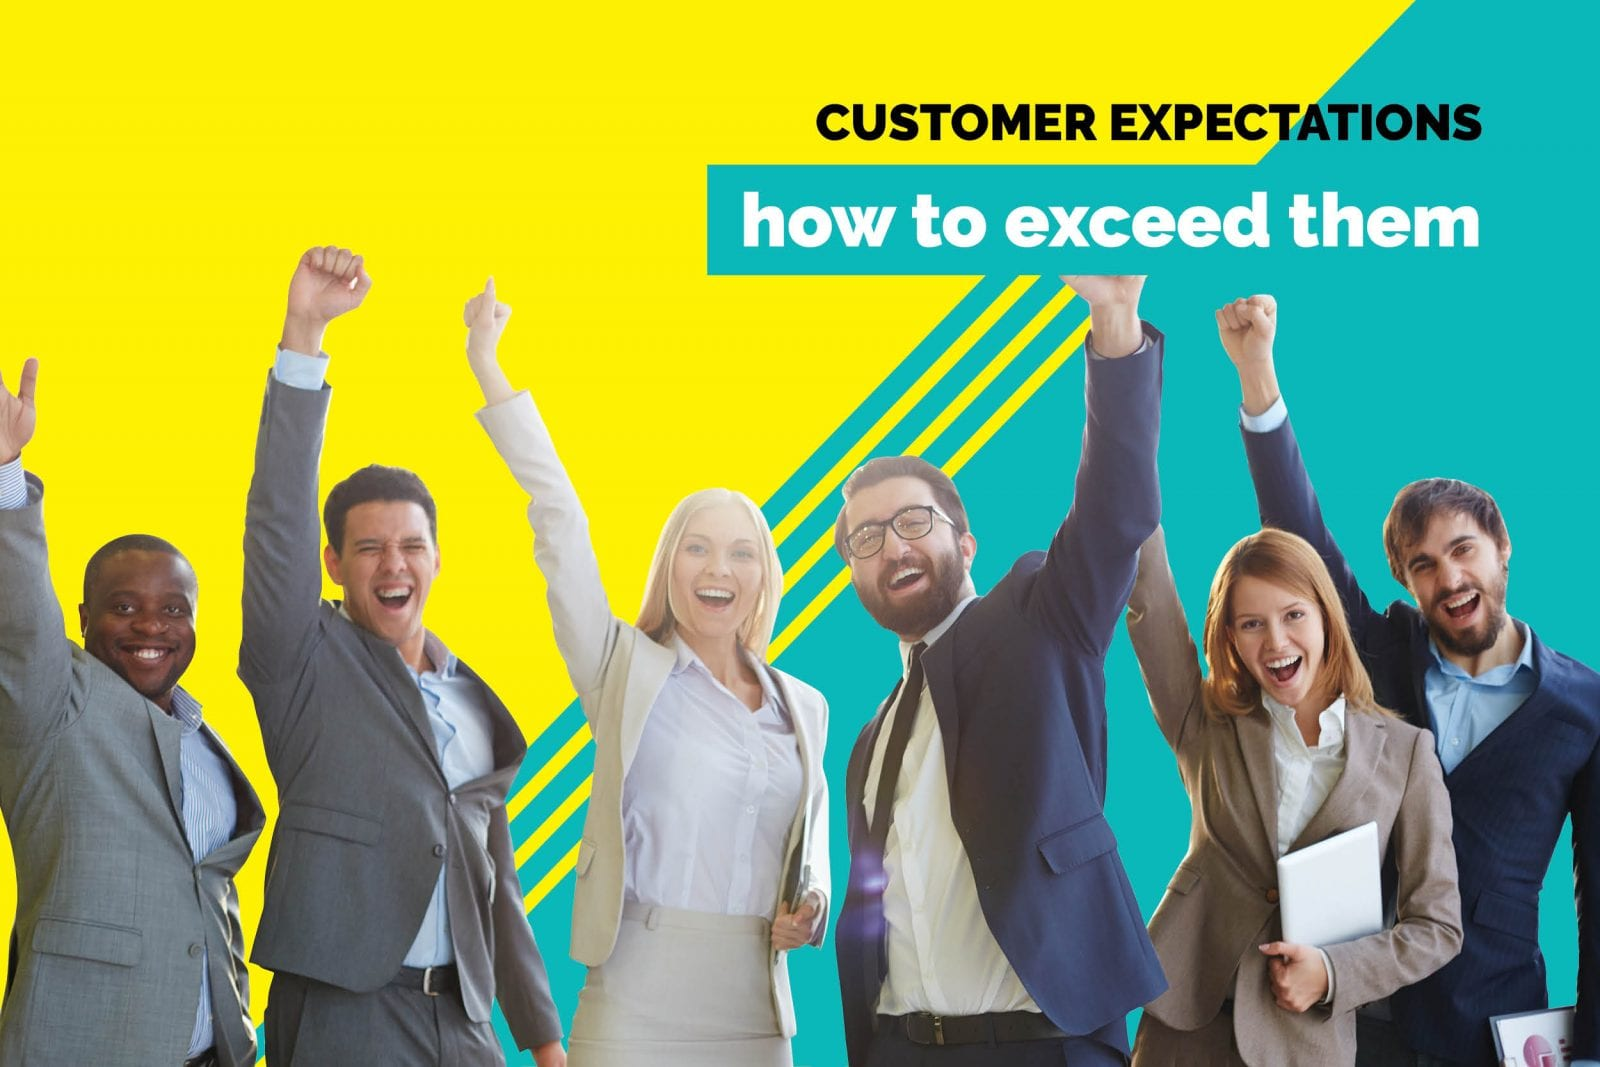 Exceeding Customer Expectations | 8 Scenarios On How to Deliver